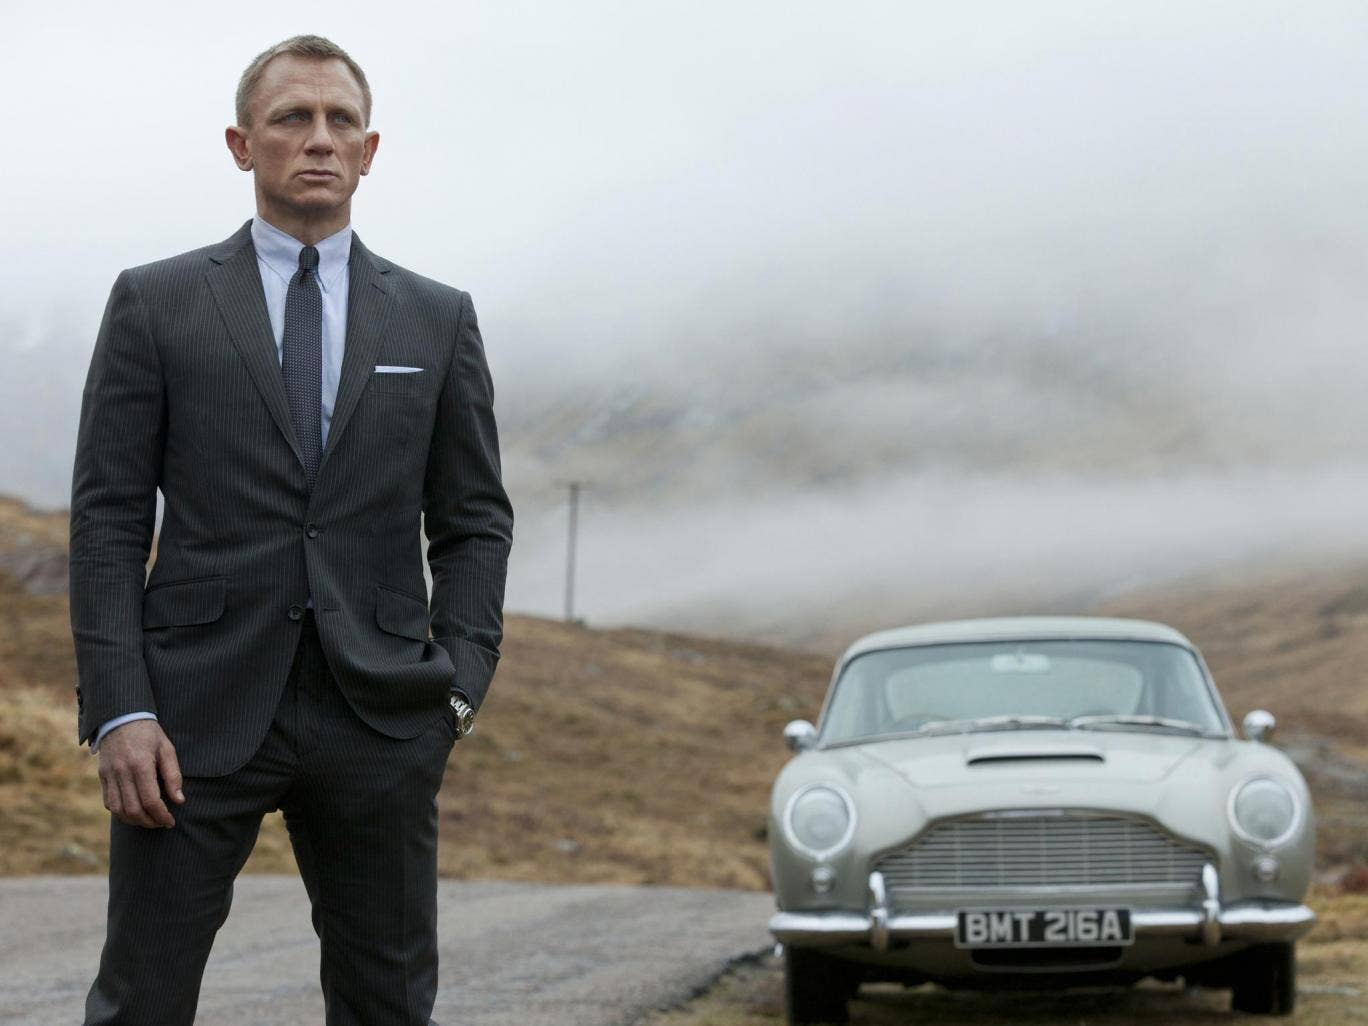 Daniel Craig, pictured here in Skyfall, is returning as James Bond for Spectre